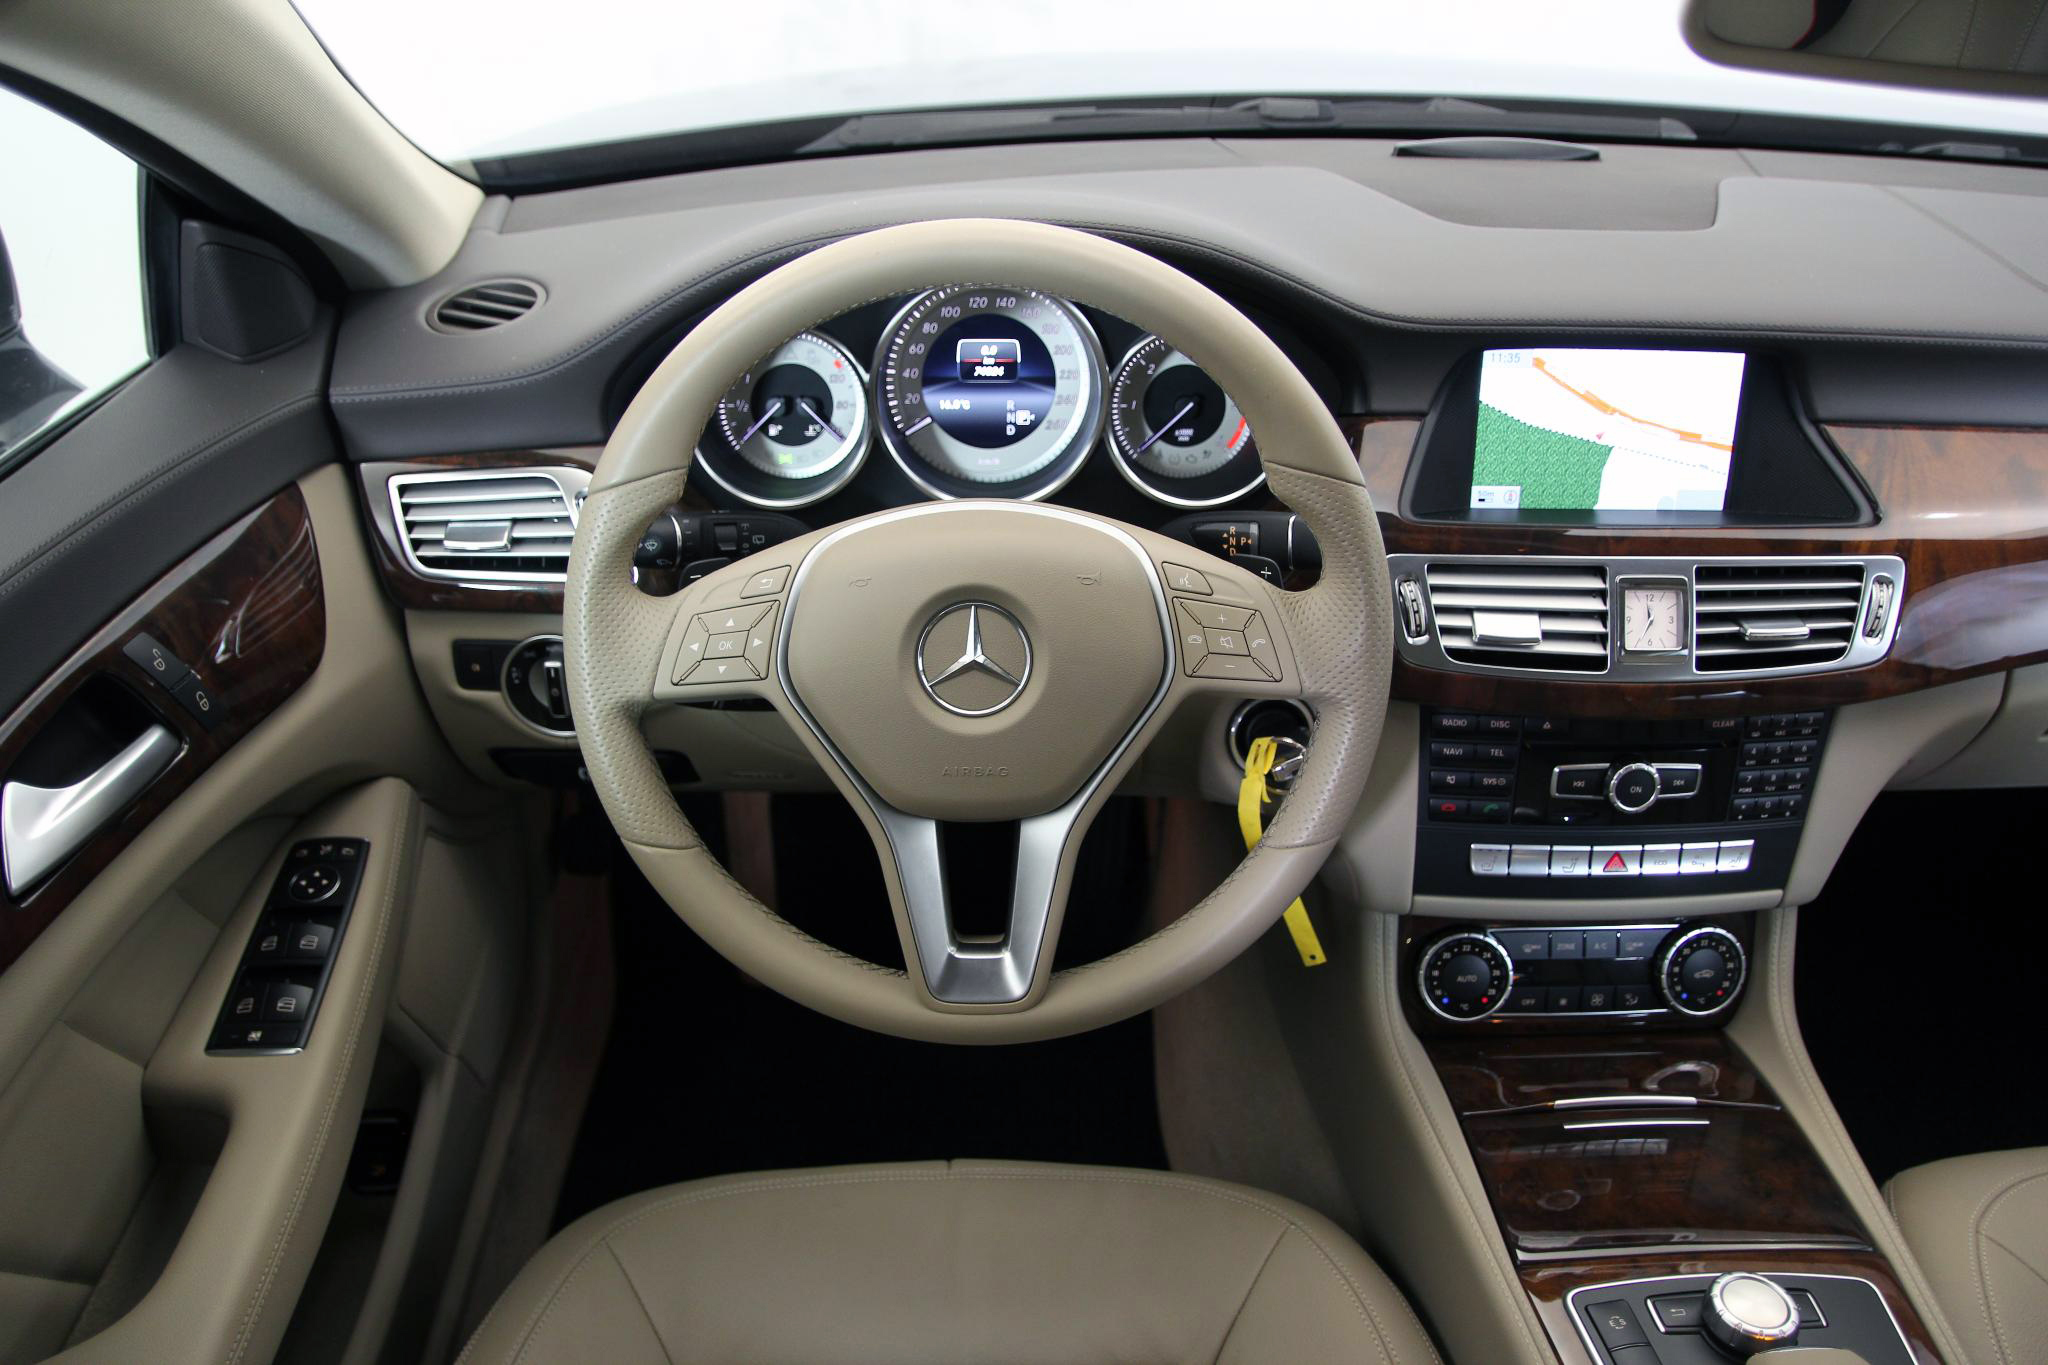 Mercedes-Benz Clase CLS CLS SHOOTING BRAKE 350 CDI AUTO imagen 11